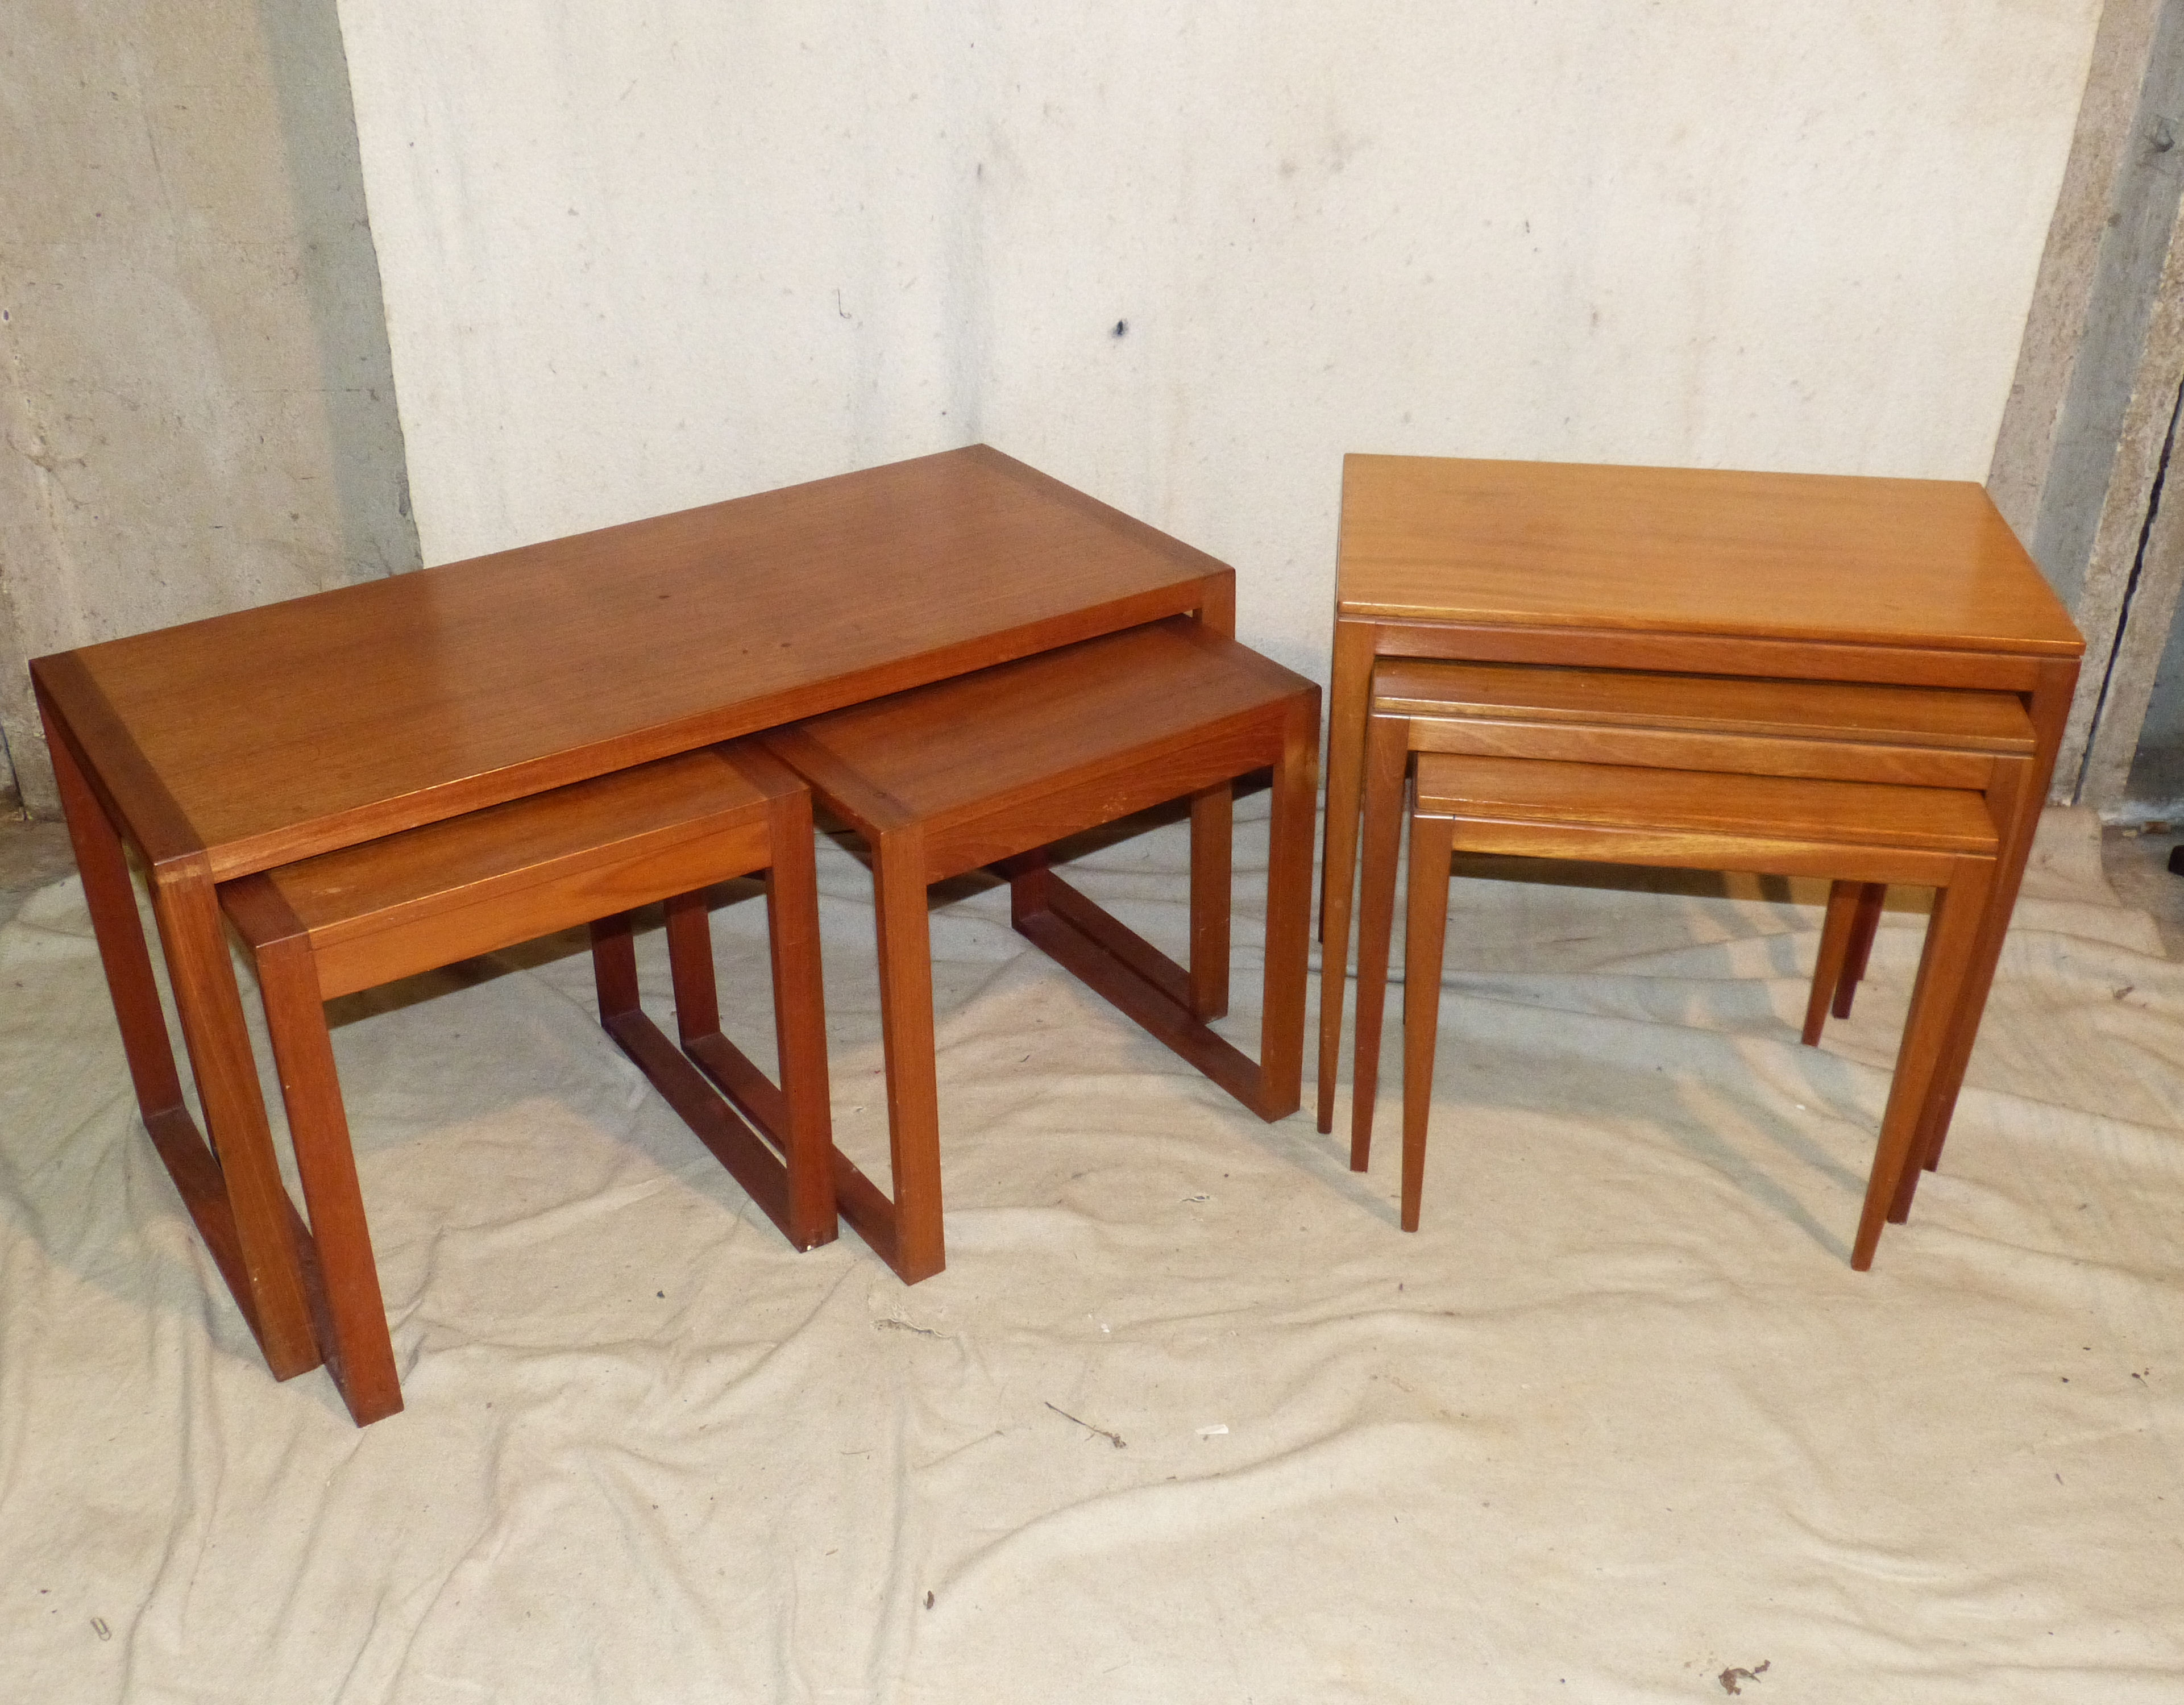 A Heals Teak Style Rectangular Coffee Table having 2 smaller inset coffee tables